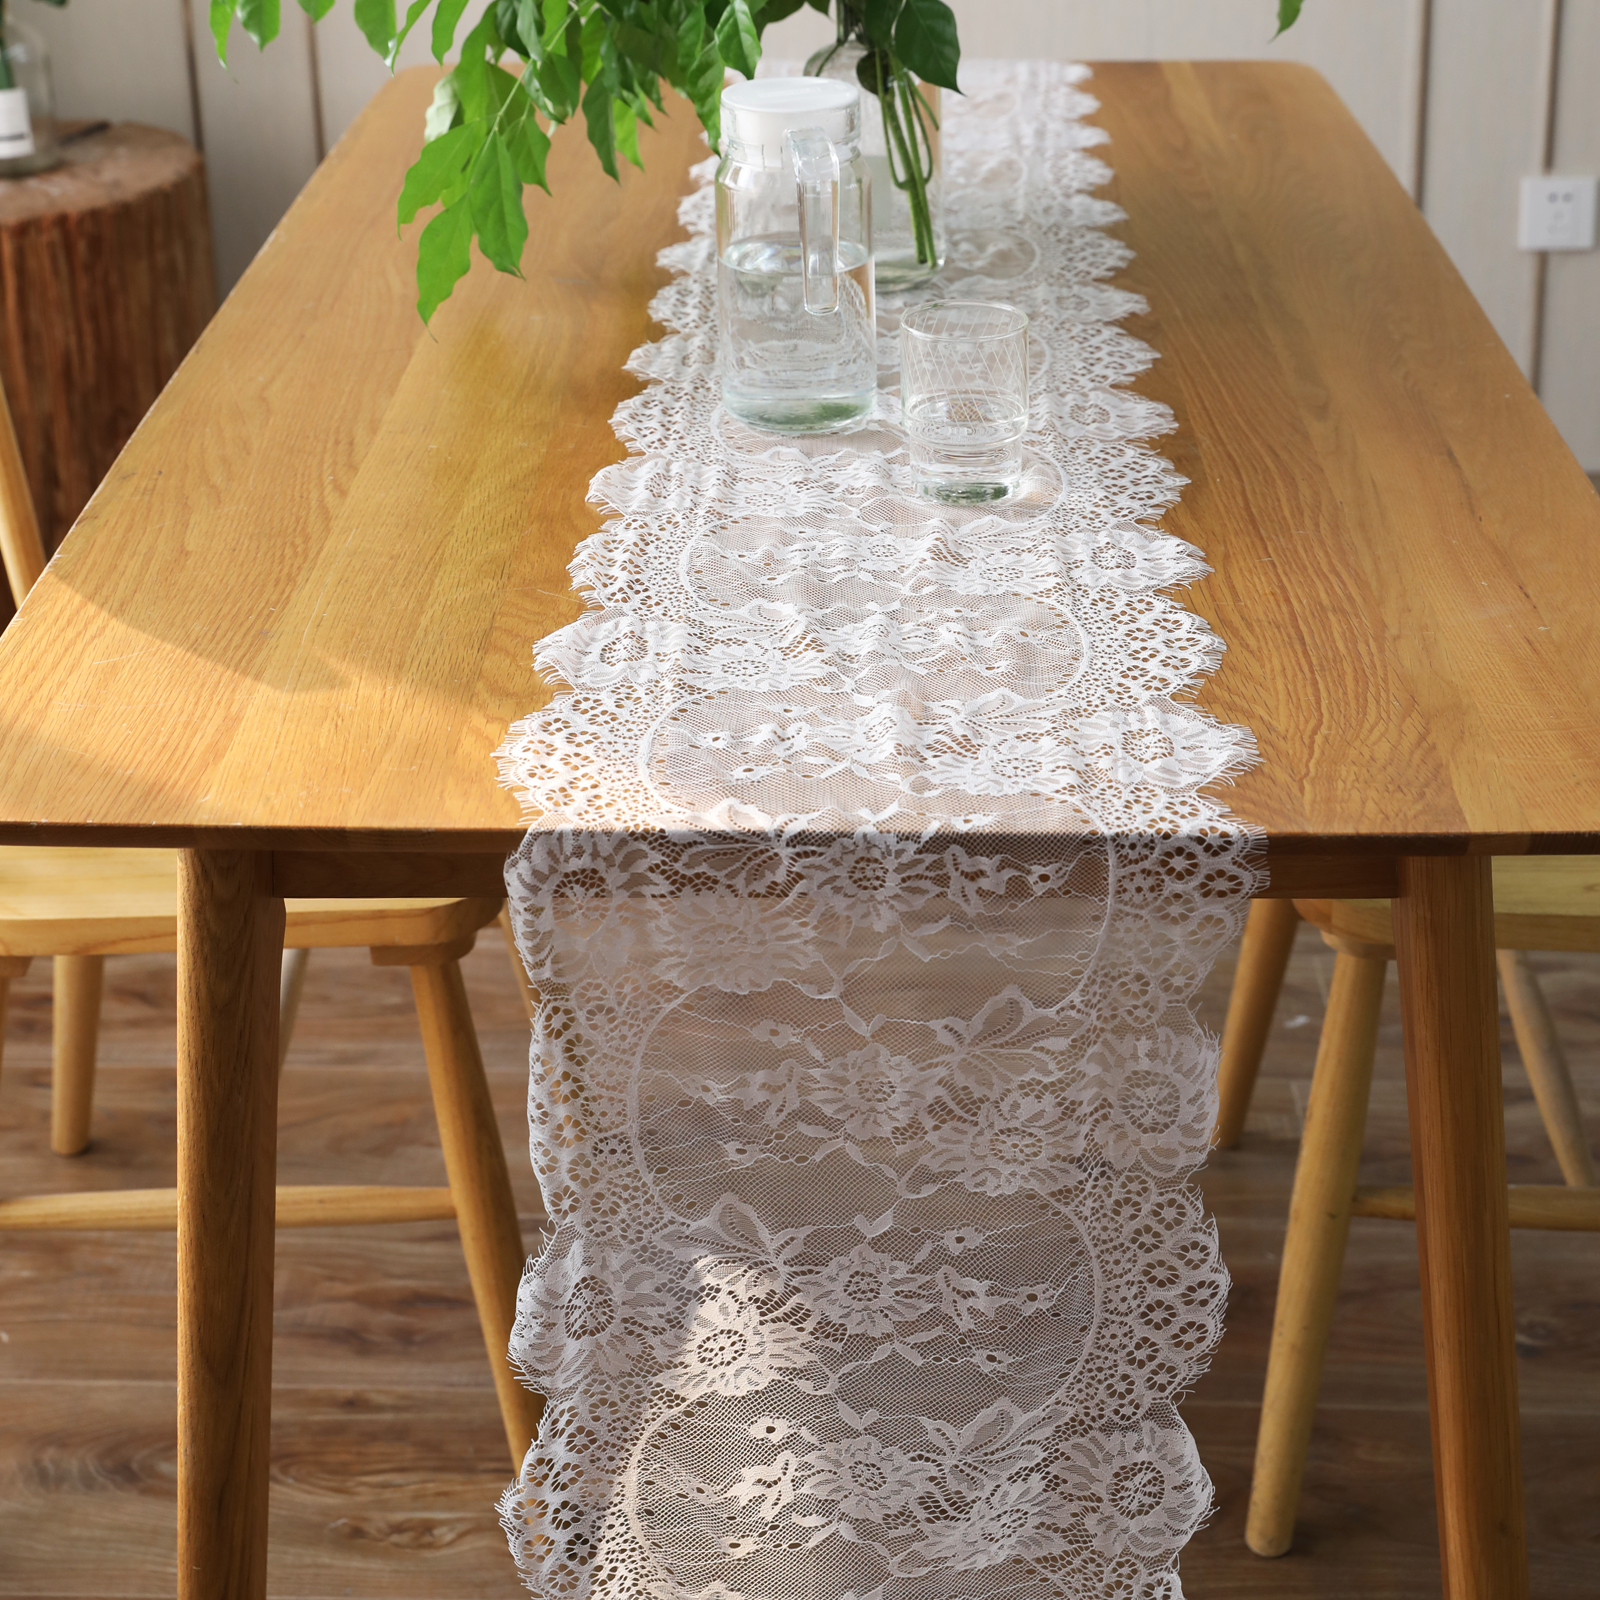 35X300cm White/Black Lace Table Runner For Baby Shower Boho Wedding Table Decoration Festive Party Home Textile Supplies